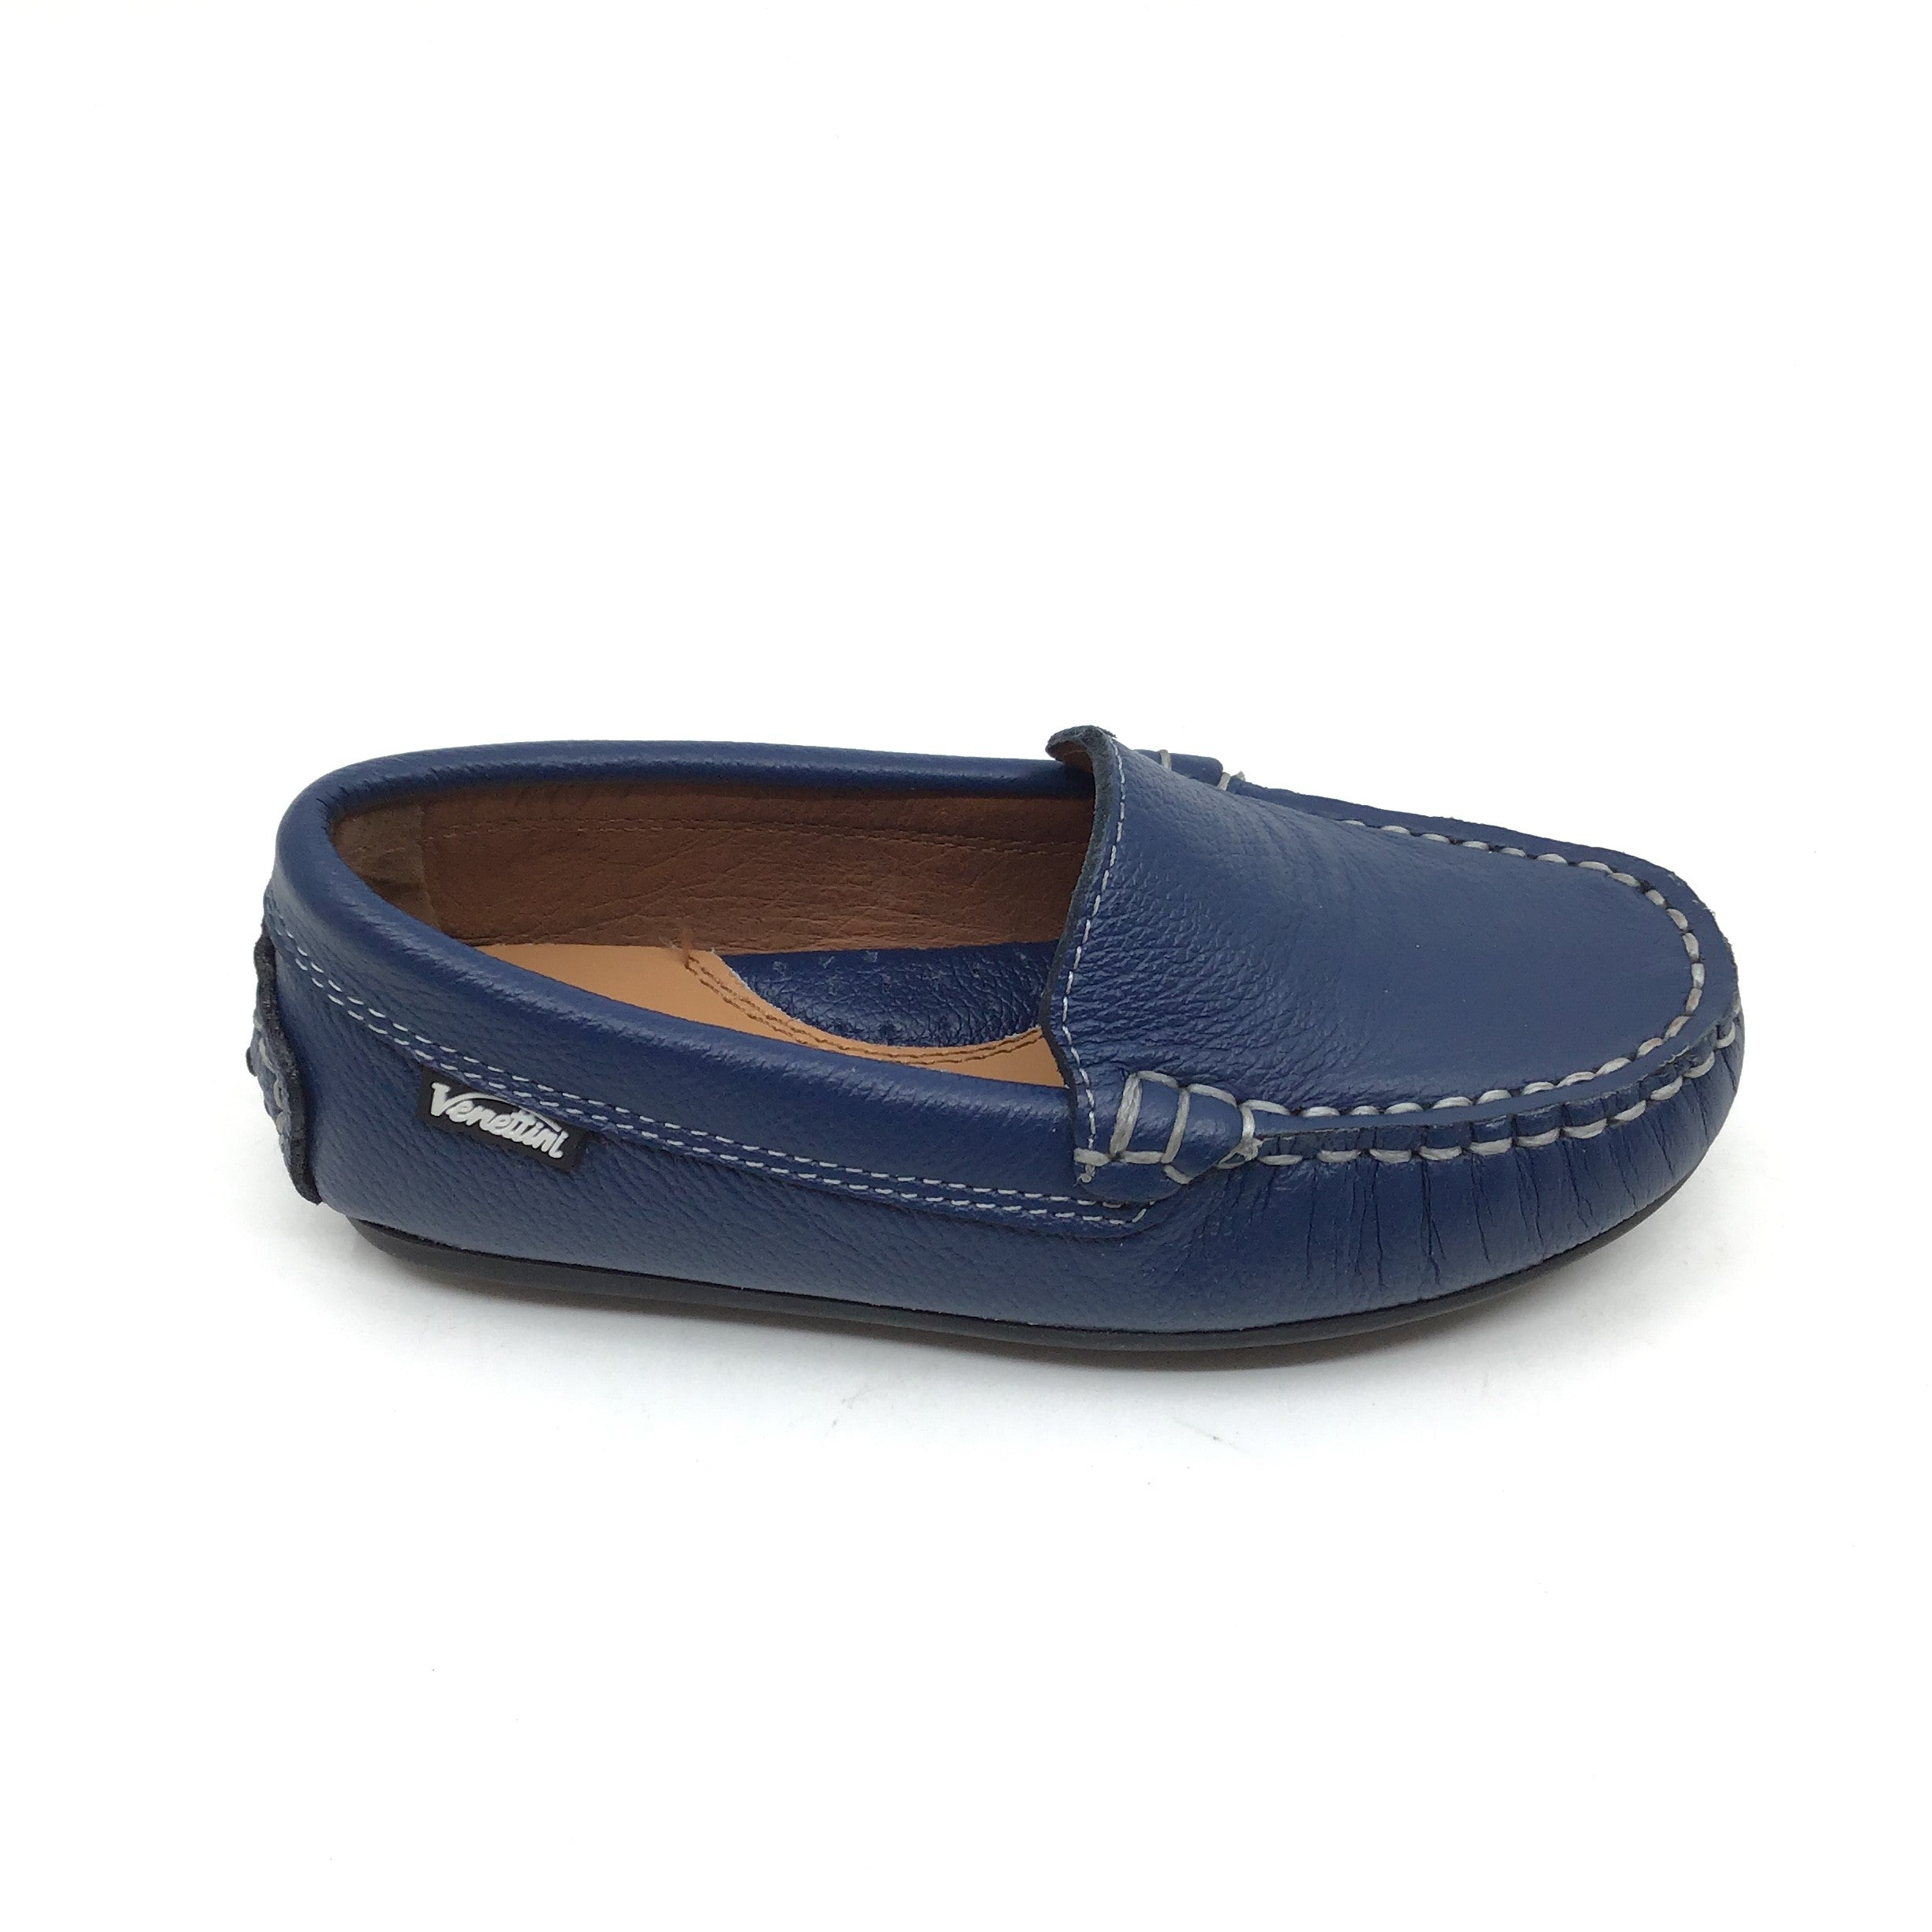 Venettini Blue Moccassin